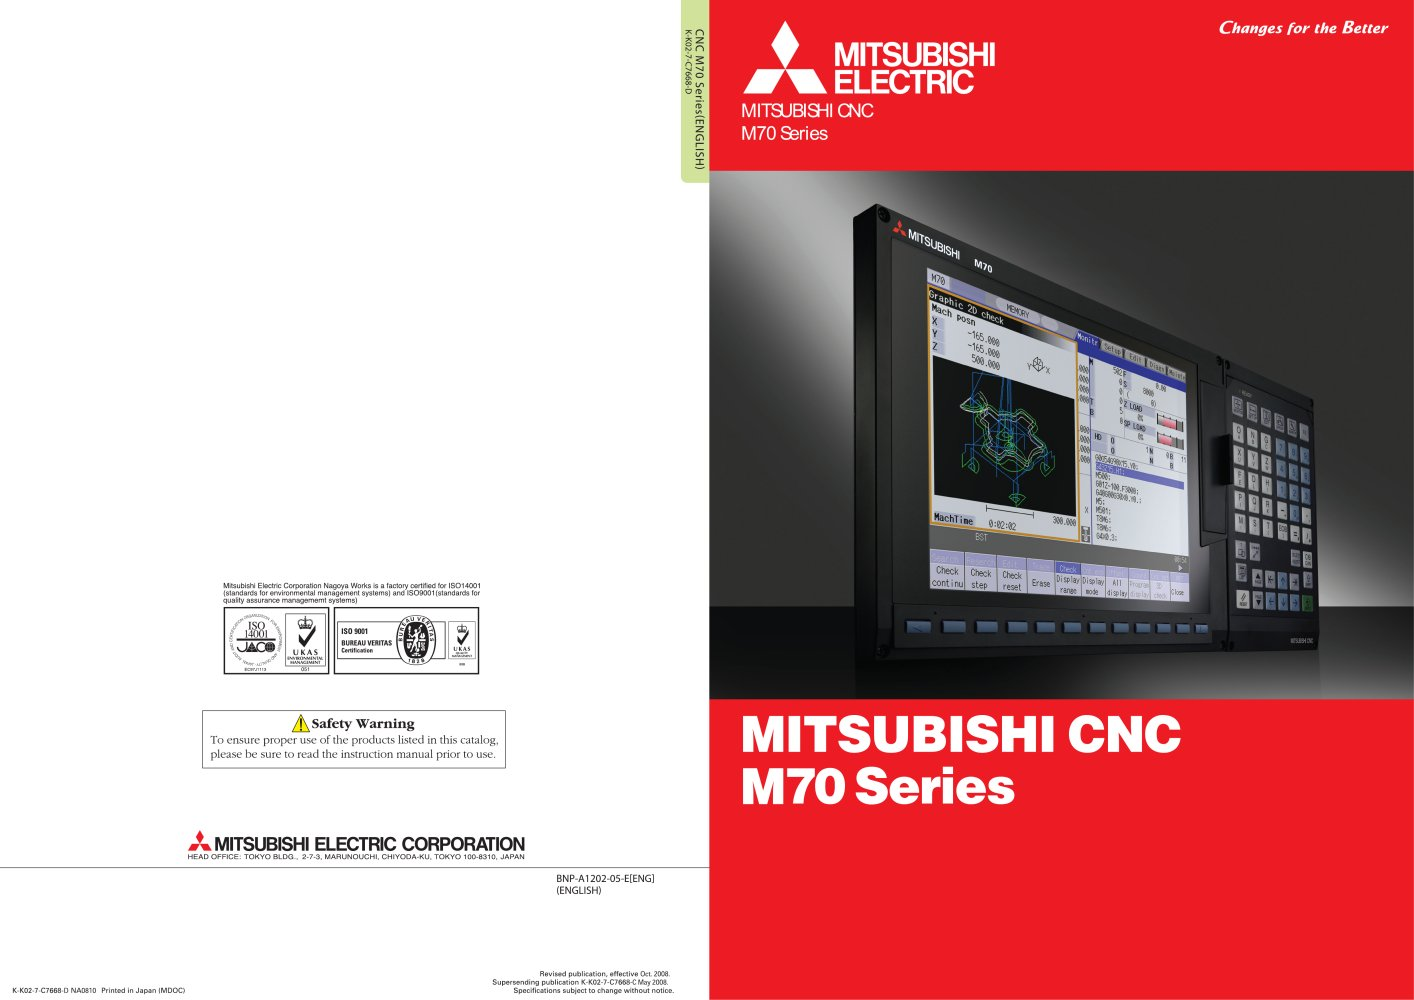 M70 Series - 1 / 8 Pages